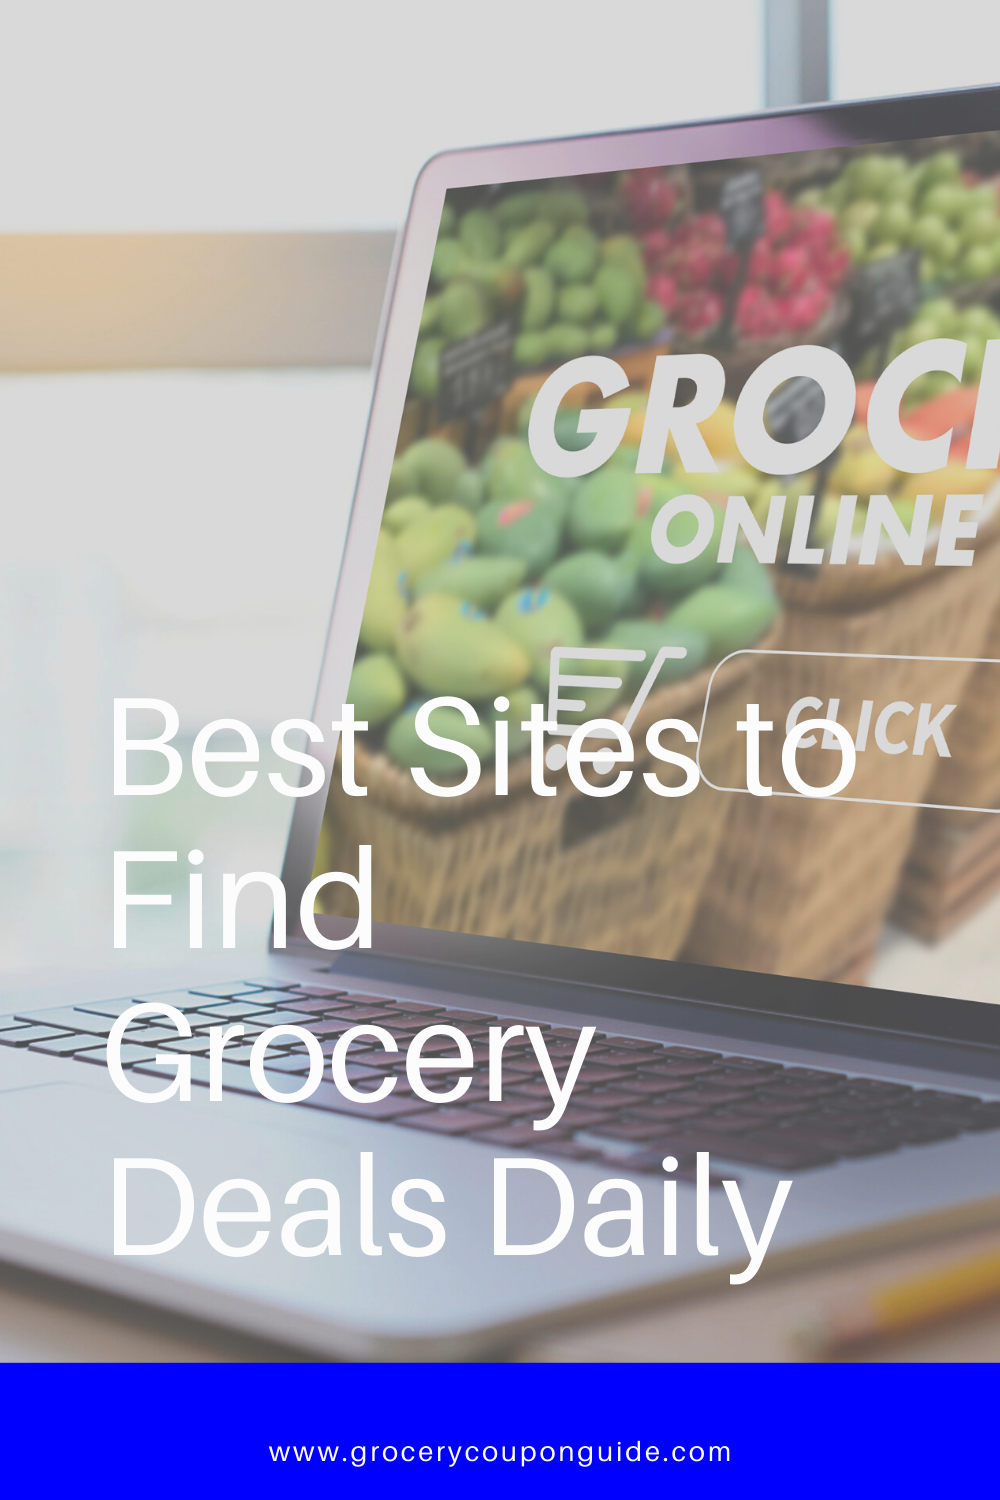 Best Sites to Find Grocery Deals Daily